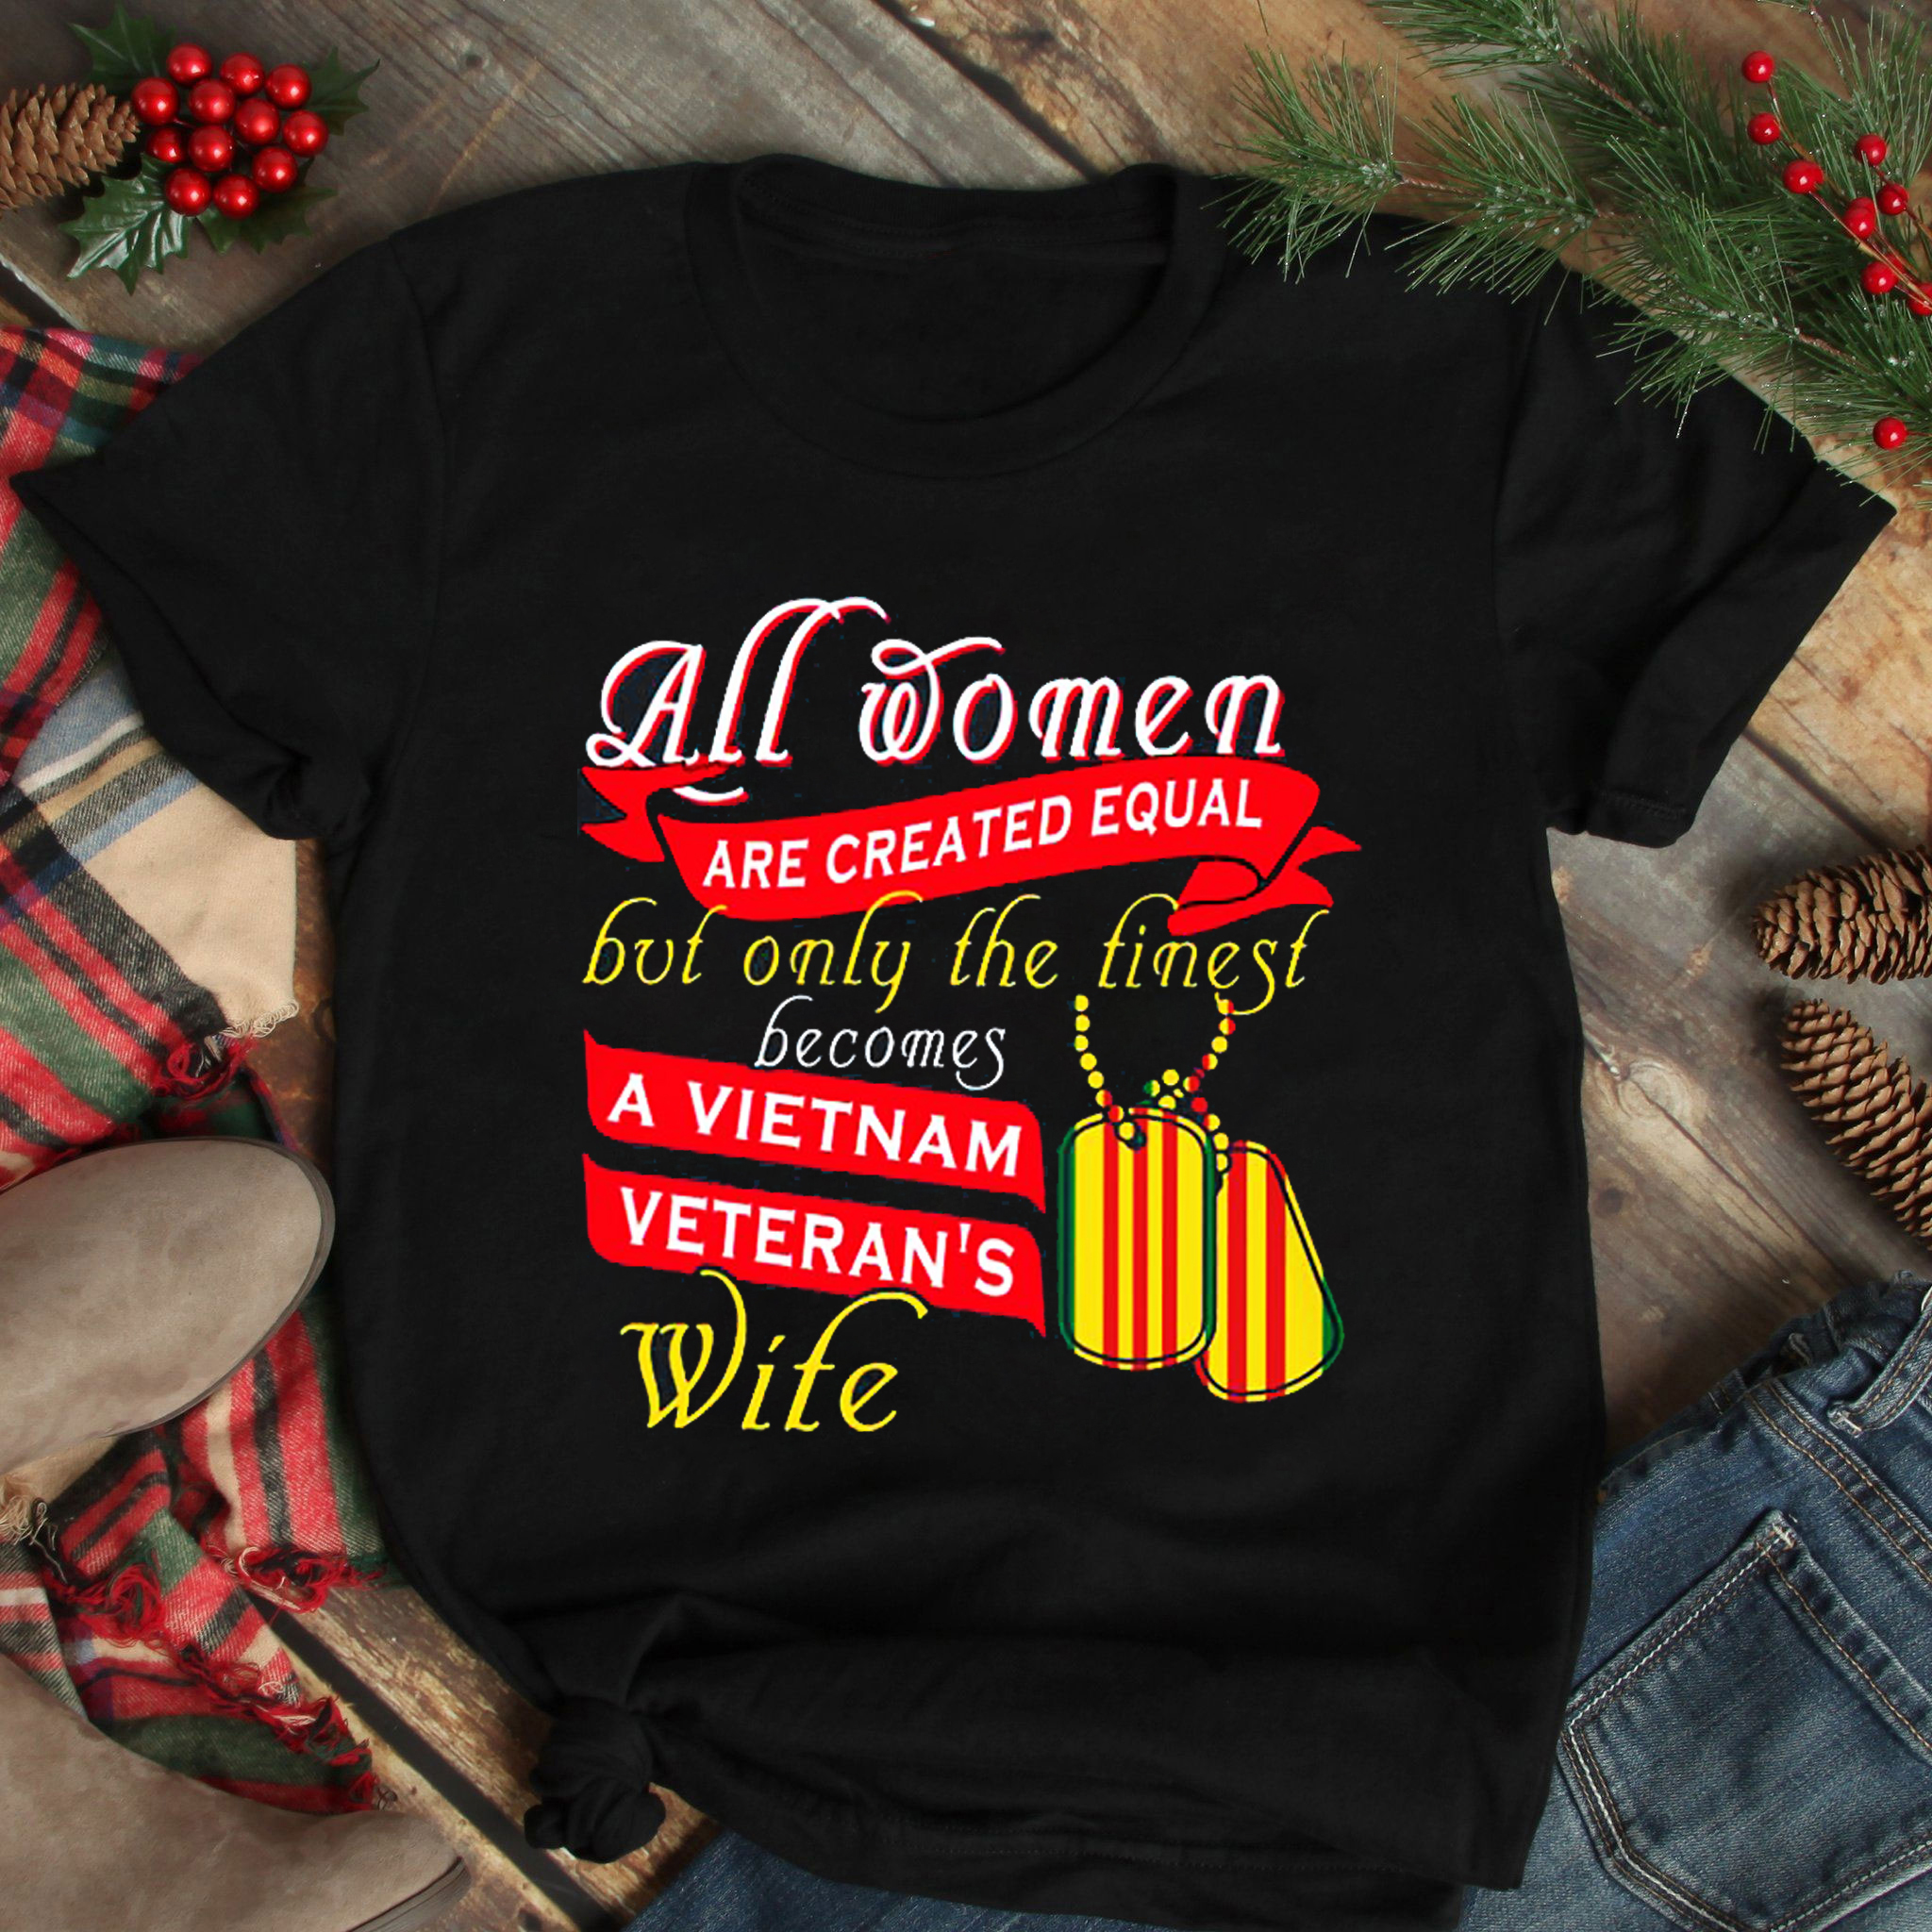 Vietnam Veteran Wife Shirt All Women Are Created Equal